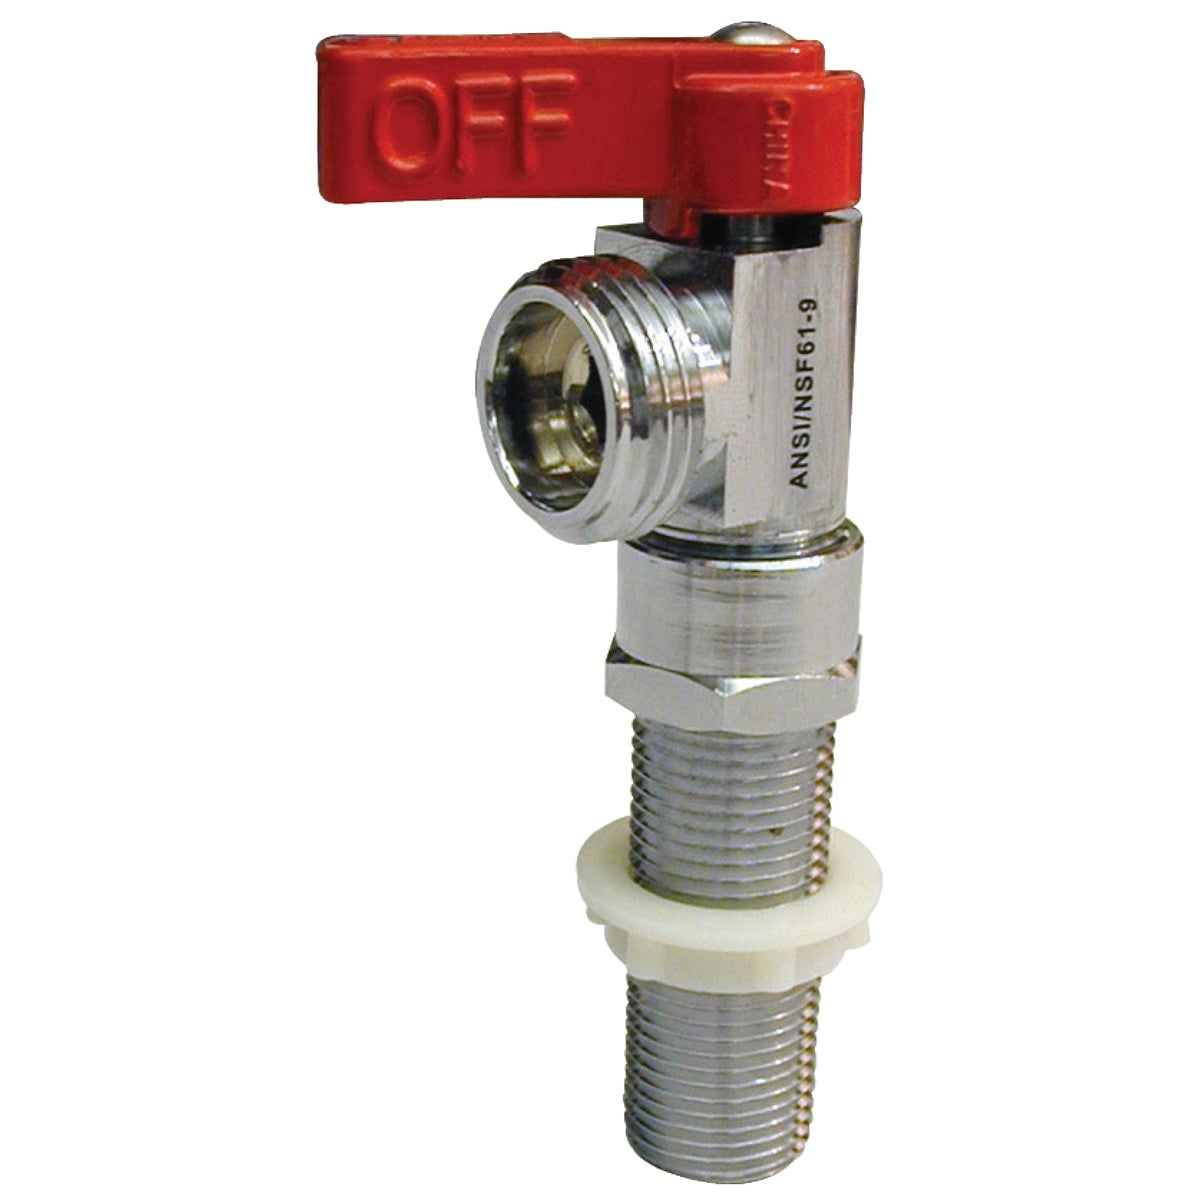 1/2 QTR TURN WASH VALVE - 102-209 by Mueller B K